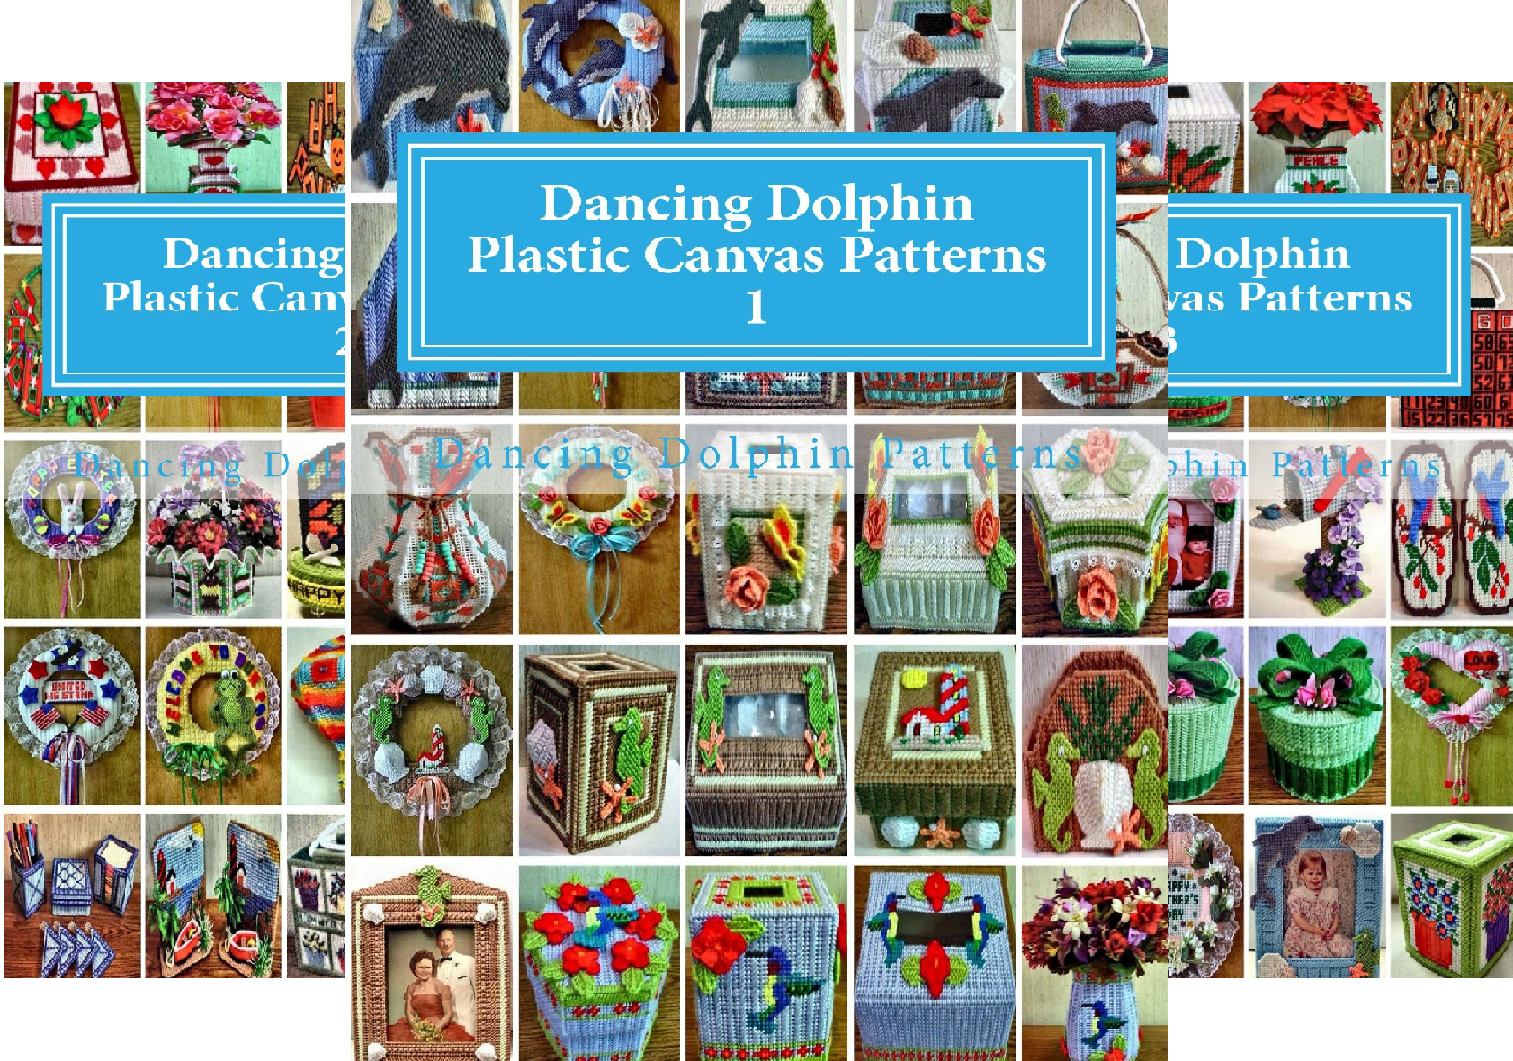 Dancing Dolphin Plastic Canvas Patterns (20 Book Series)